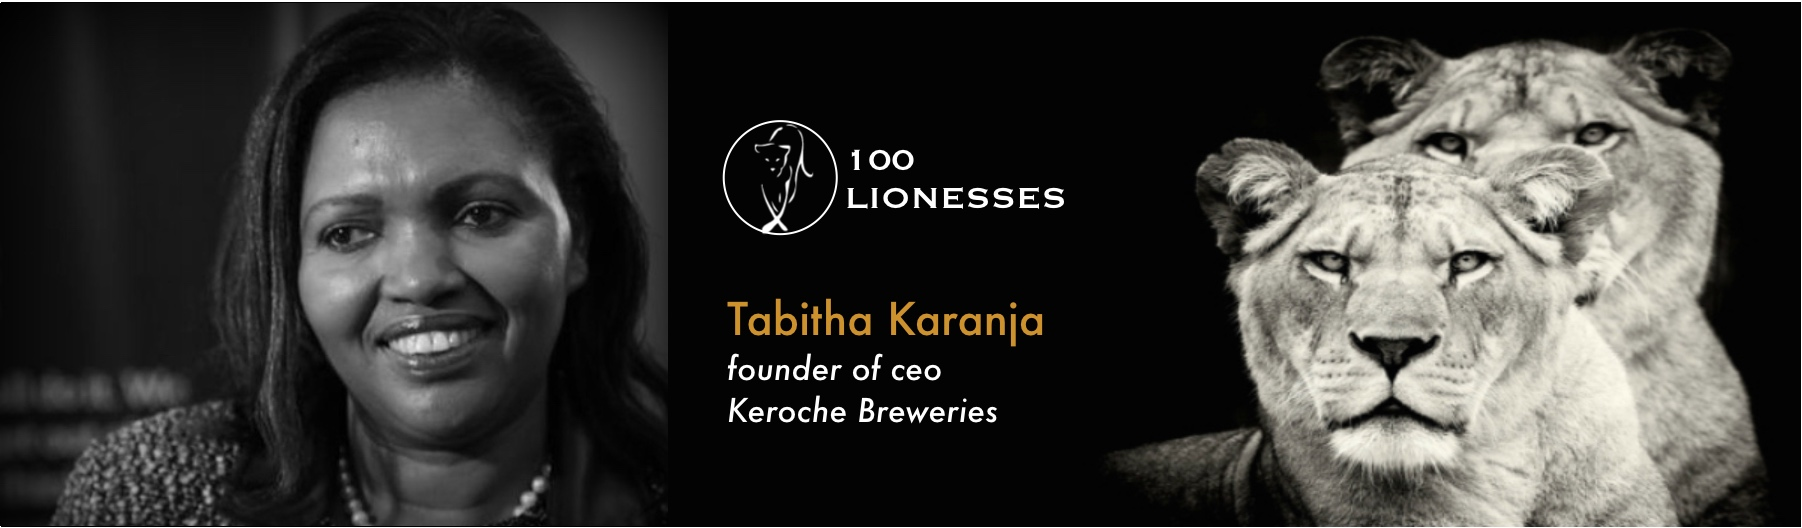 Tabitha Karanja  , founder and CEO of  Keroche Breweries  (Kenya)